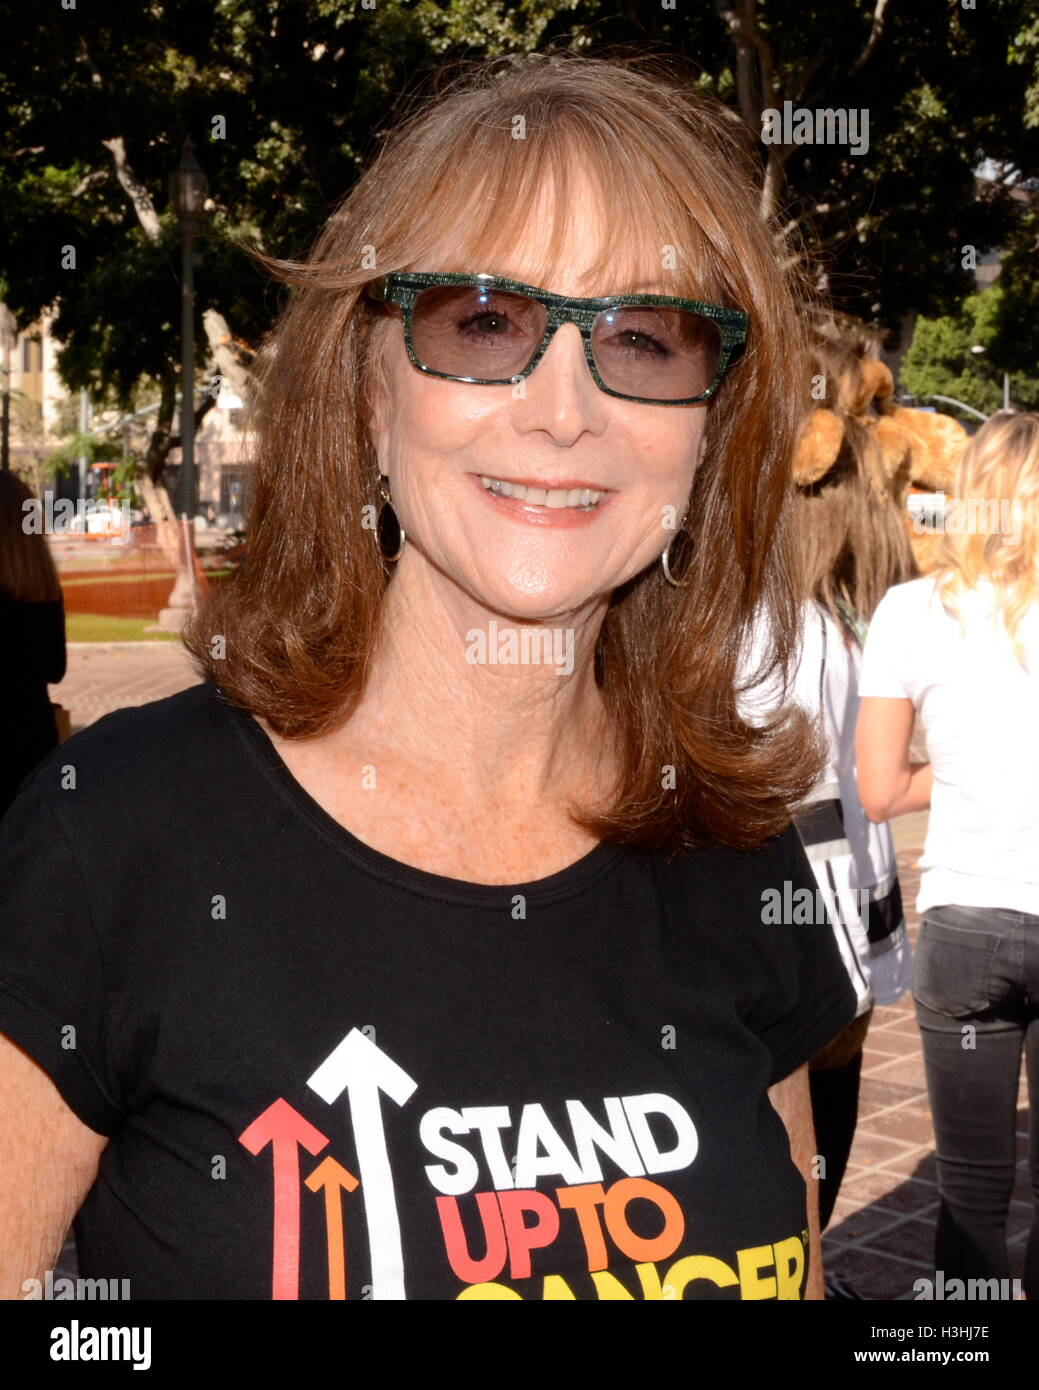 Marg Helgenberger attends Press Conference For 'Stand Up To Cancer Day' at Los Angeles City Hall, South - Stock Image